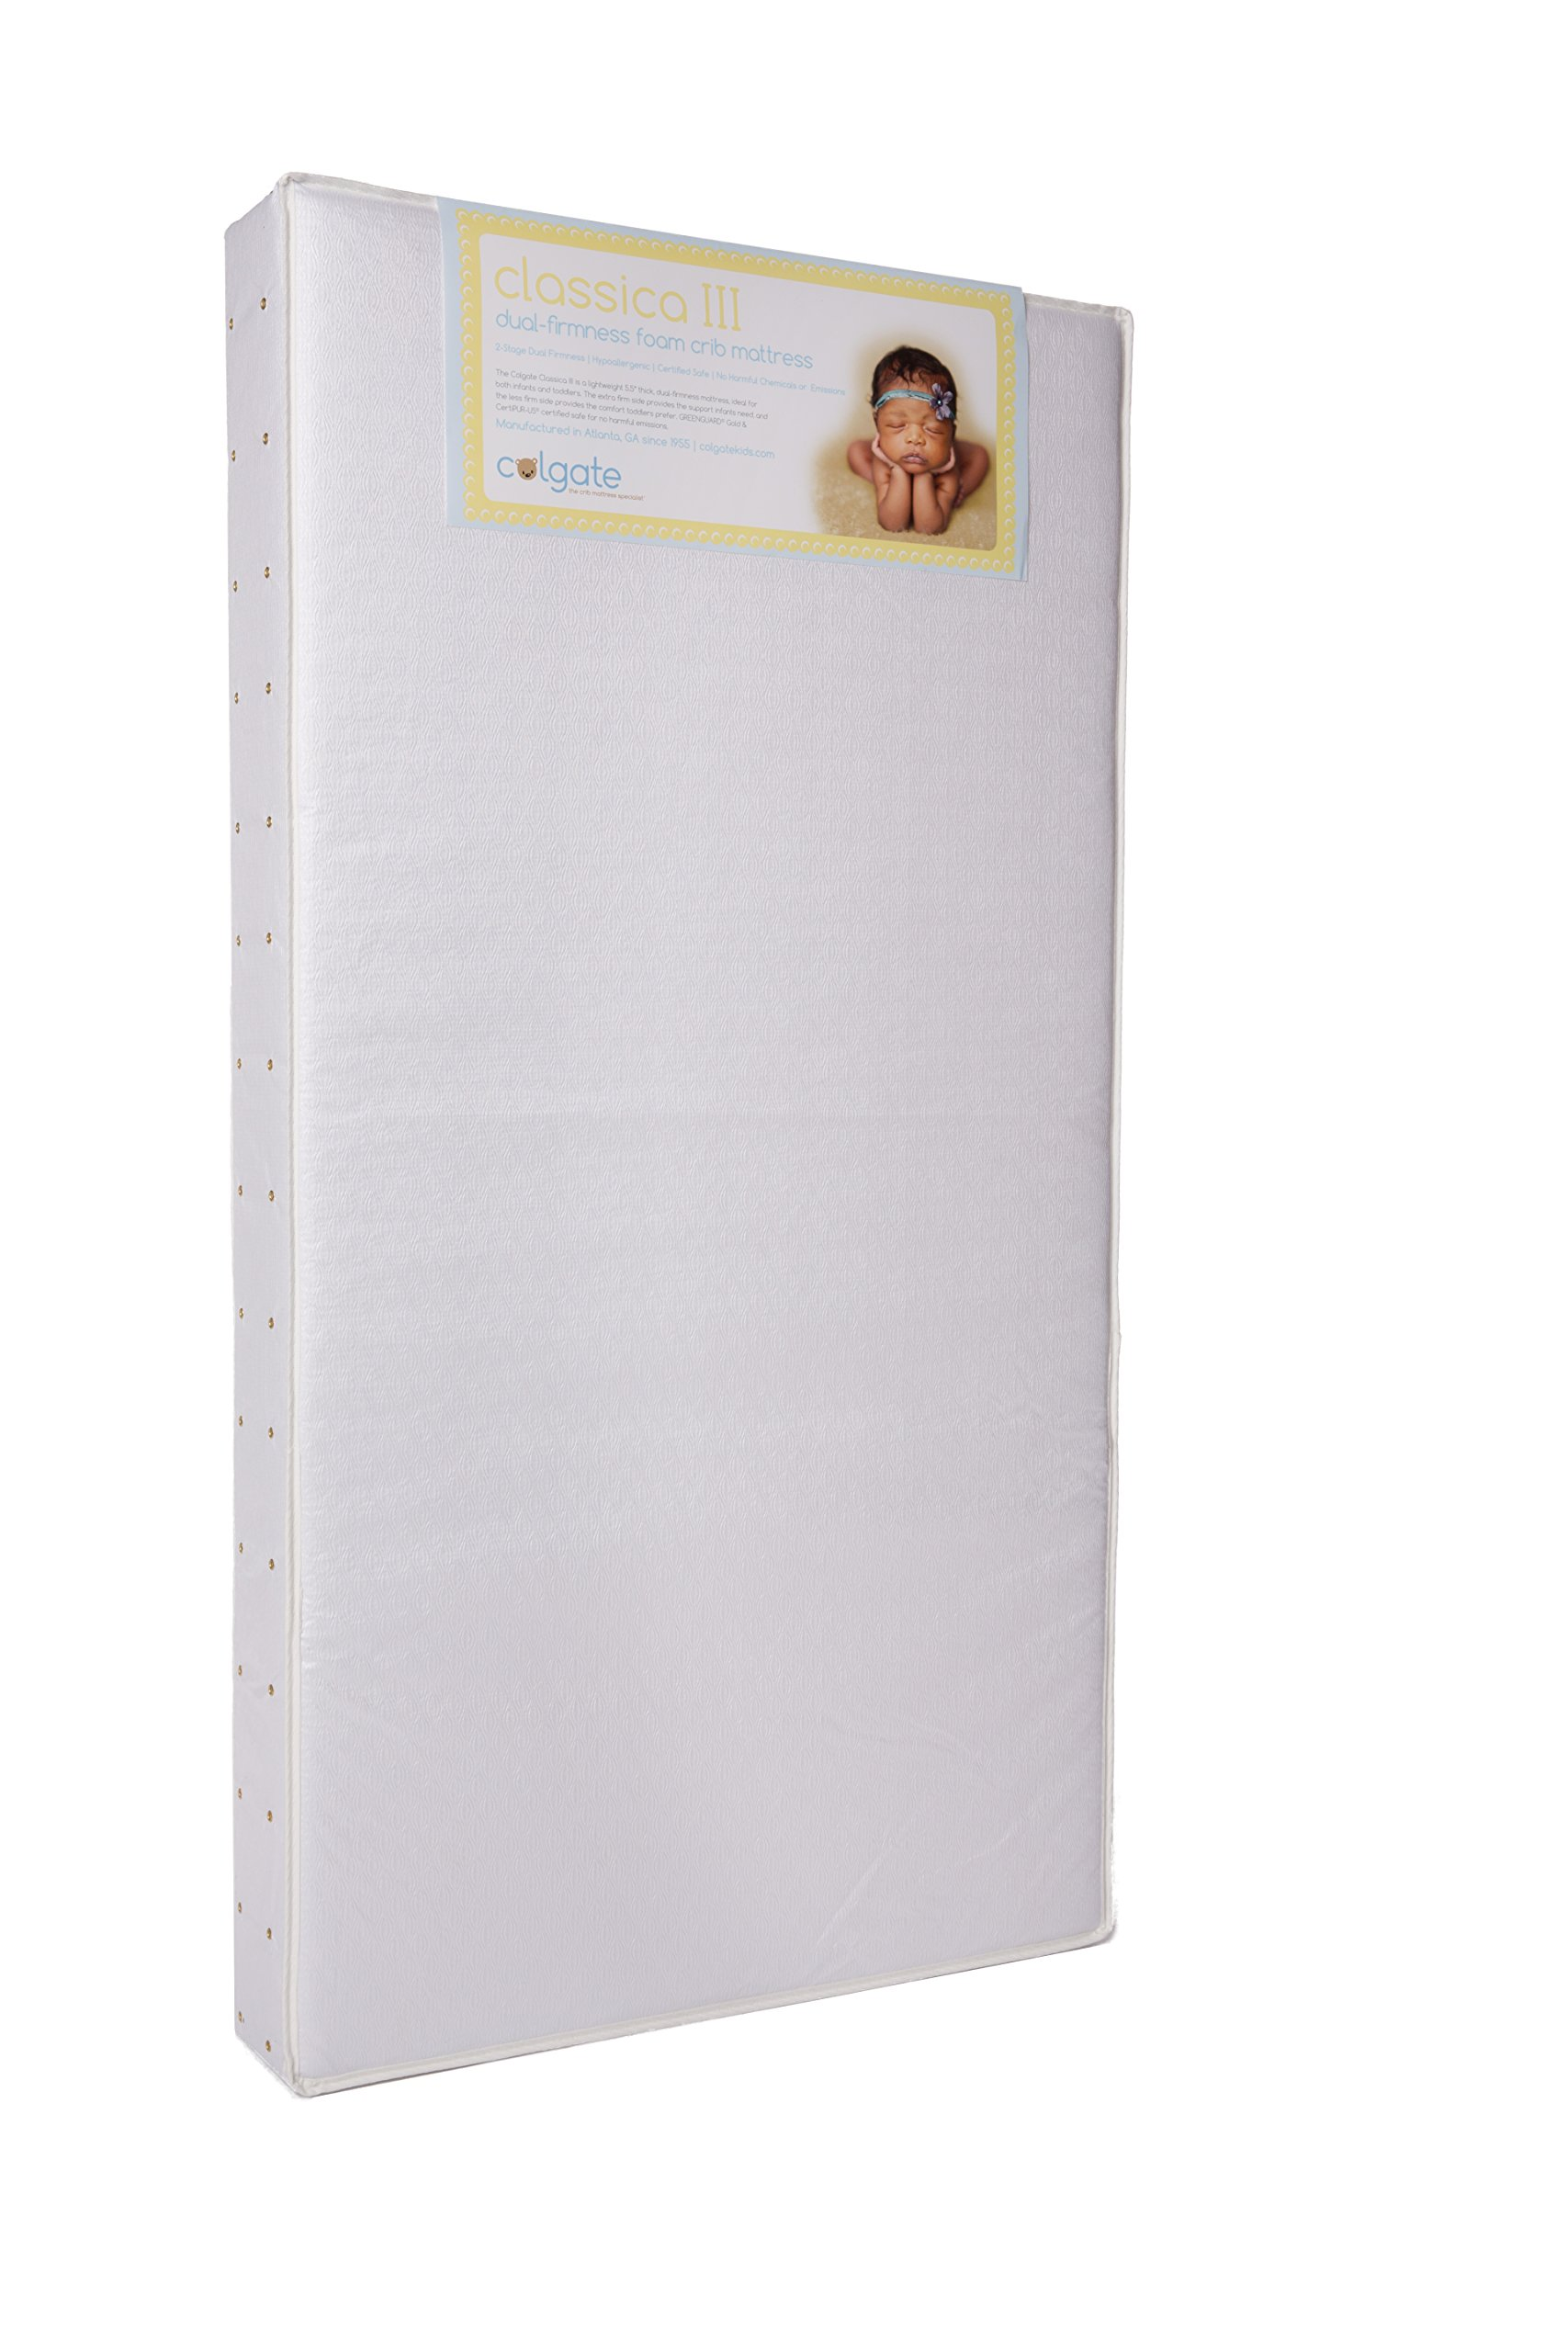 Colgate Classica III - Foam Crib and Toddler Mattress with Waterproof Cover, White